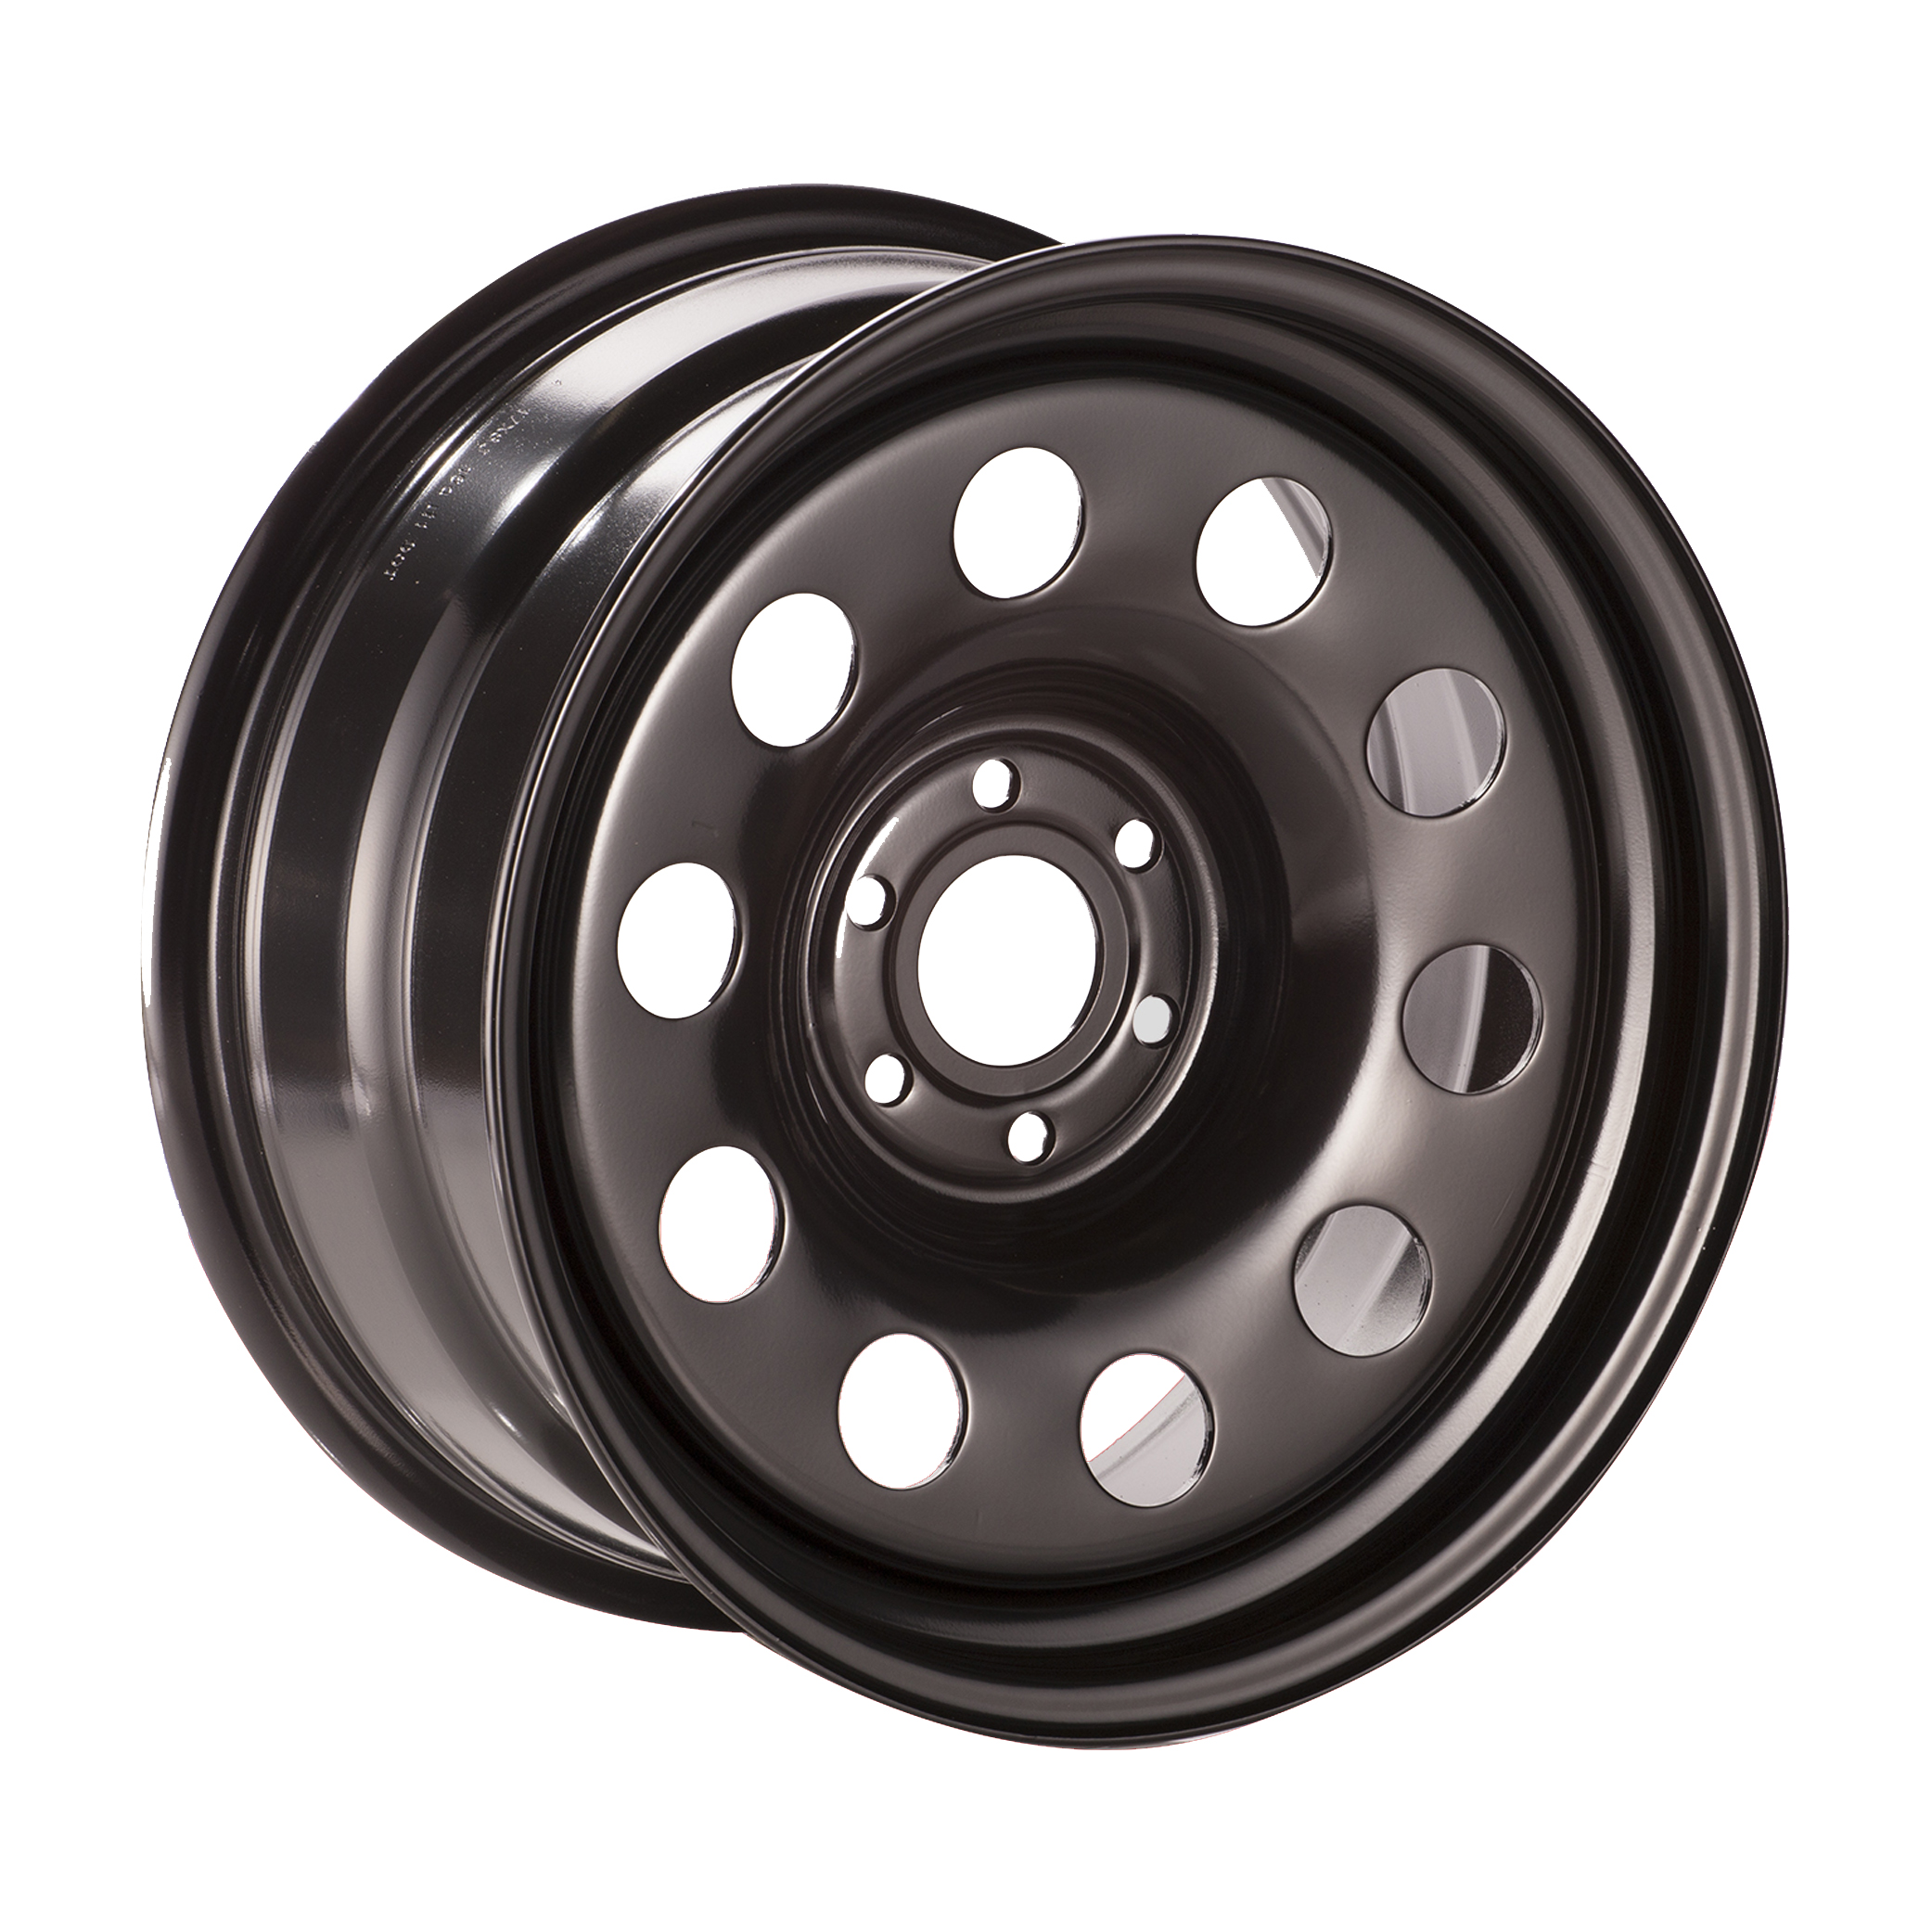 4x4 Steel Wheels Warwick